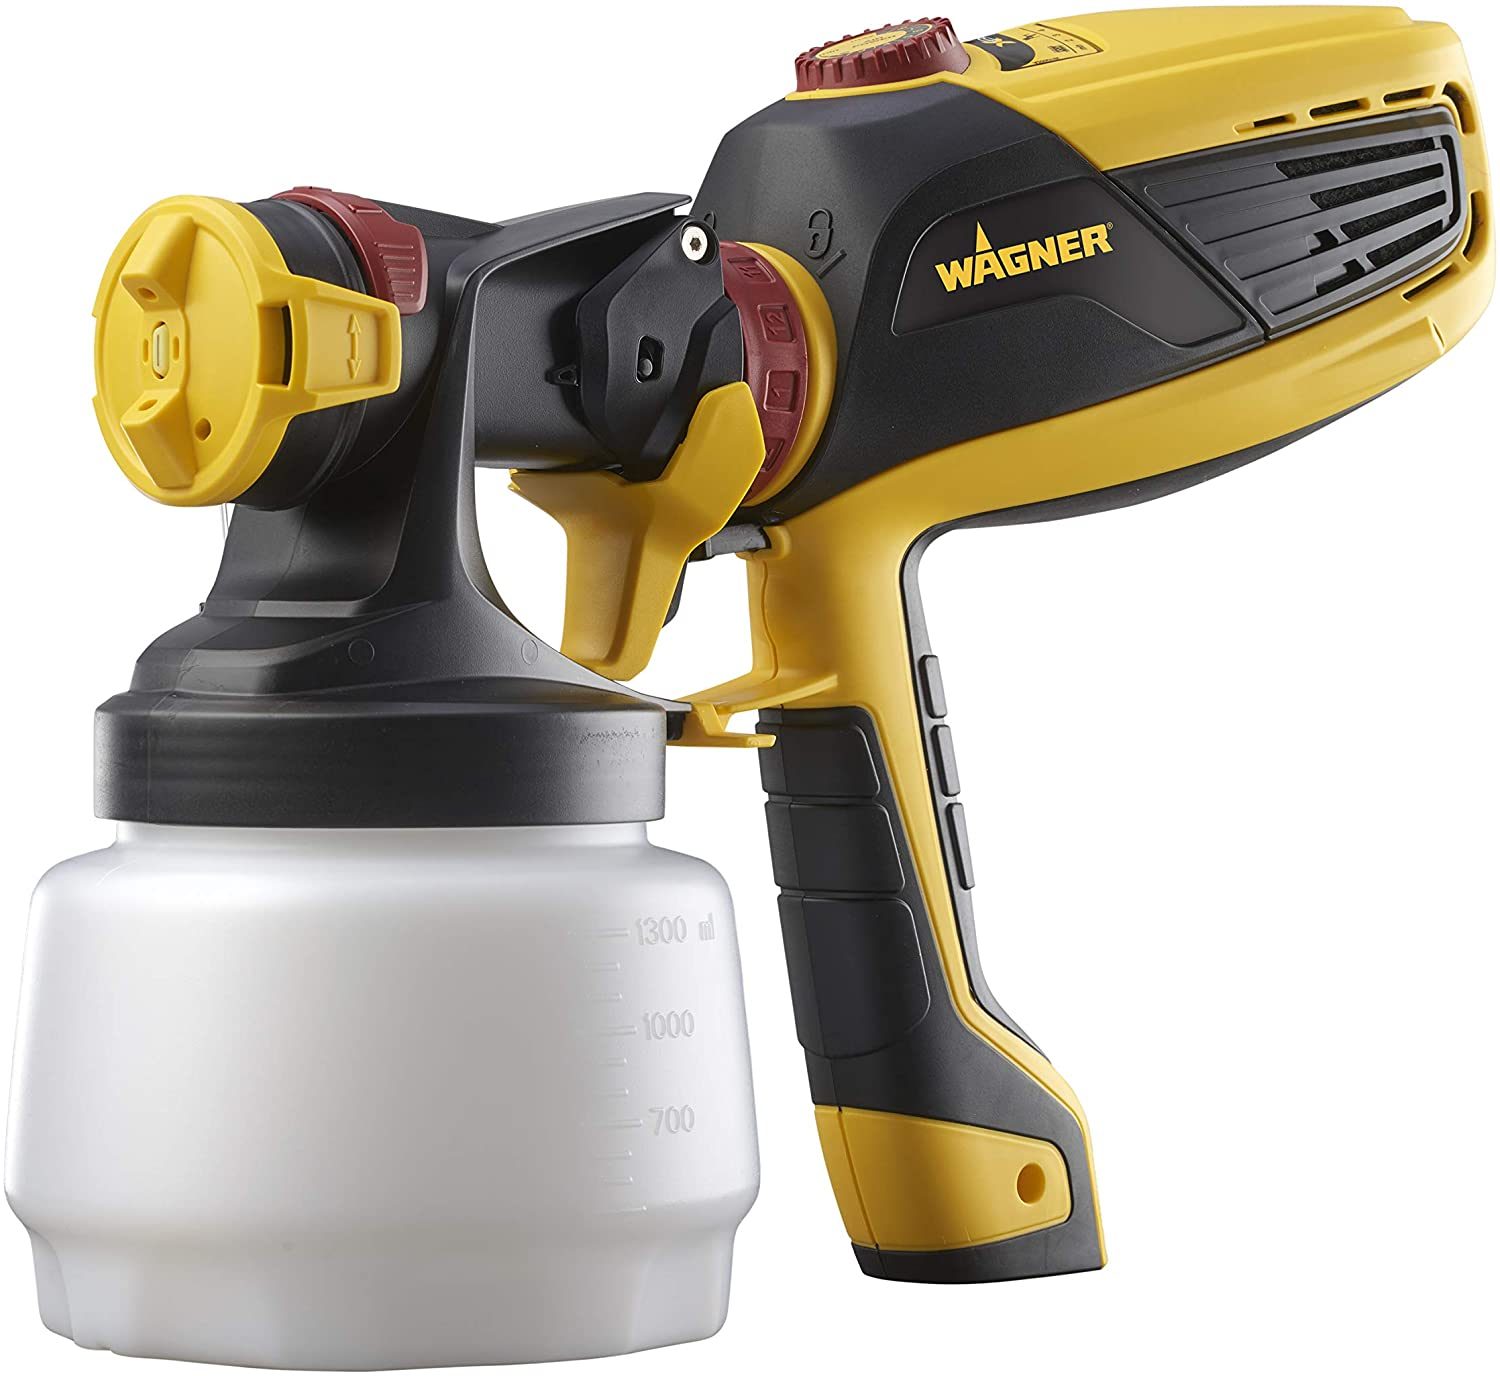 Wagner Spraytech FLEXiO 590 Handheld HVLP Paint Sprayer